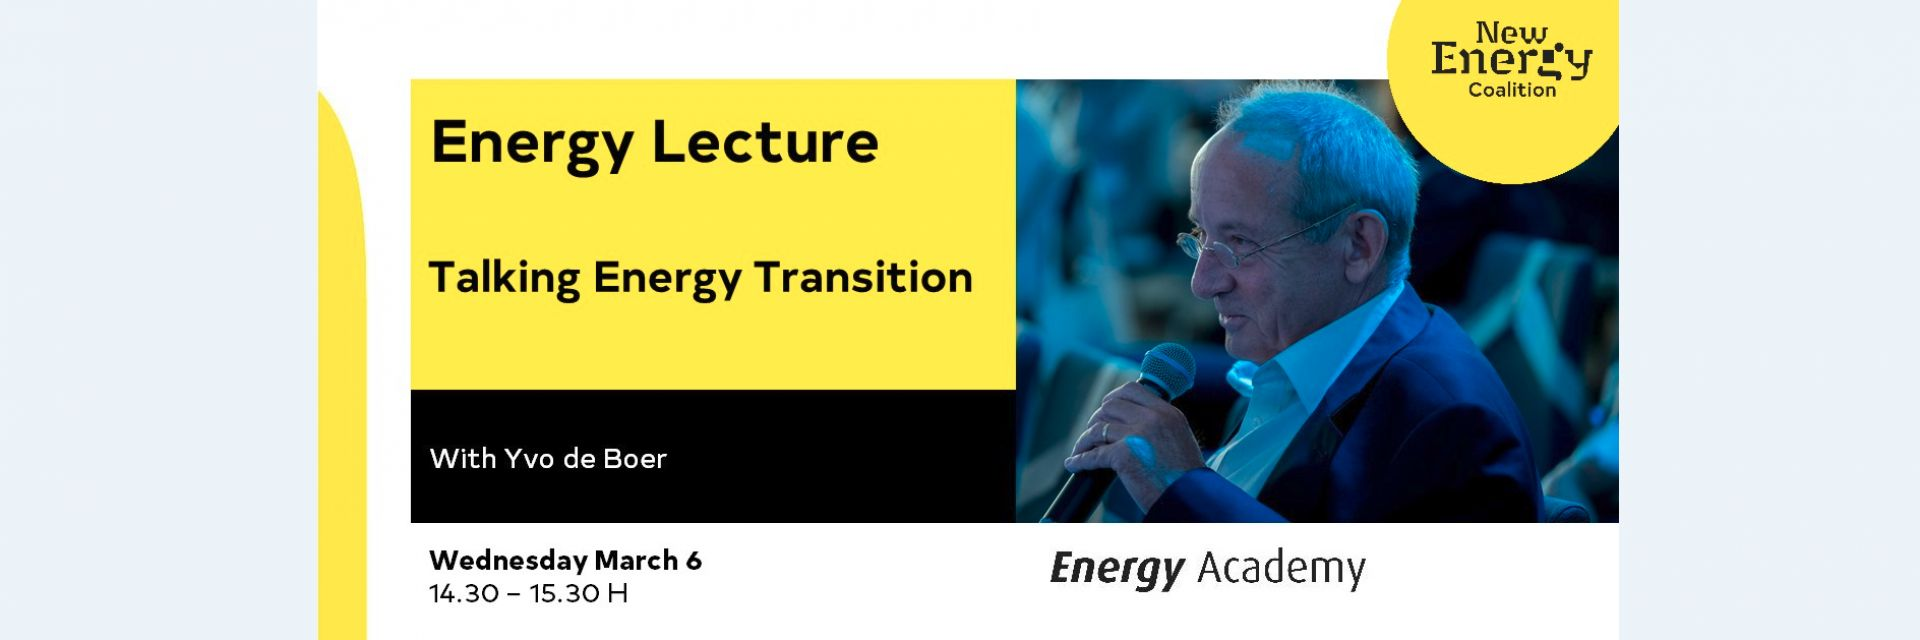 MASTERCLASS  Talking Energy Transition – with Yvo de Boer  STUDENTS ONLY